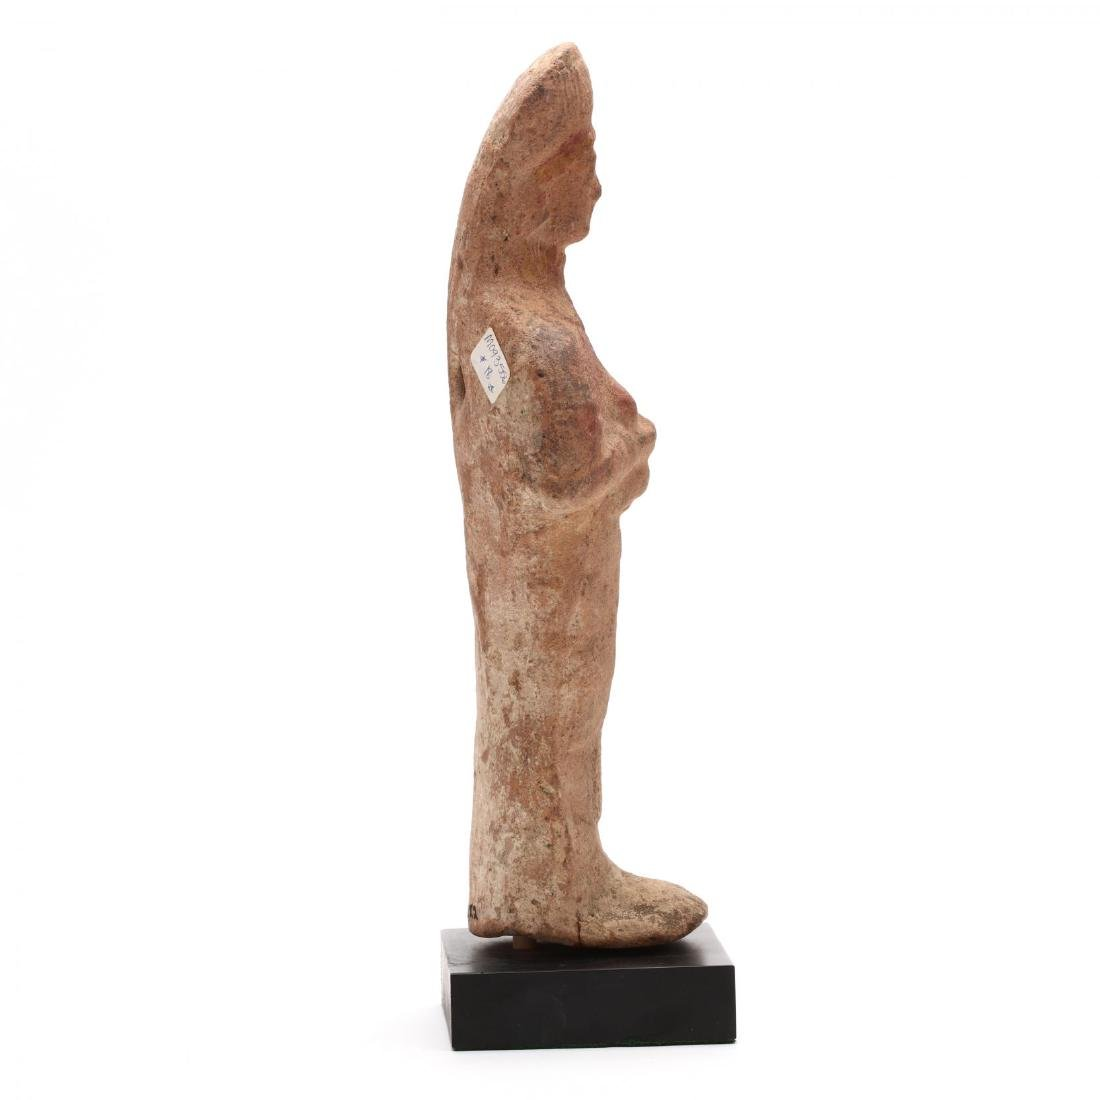 Cypriot Terracotta Statuette of a Female Votary - 2